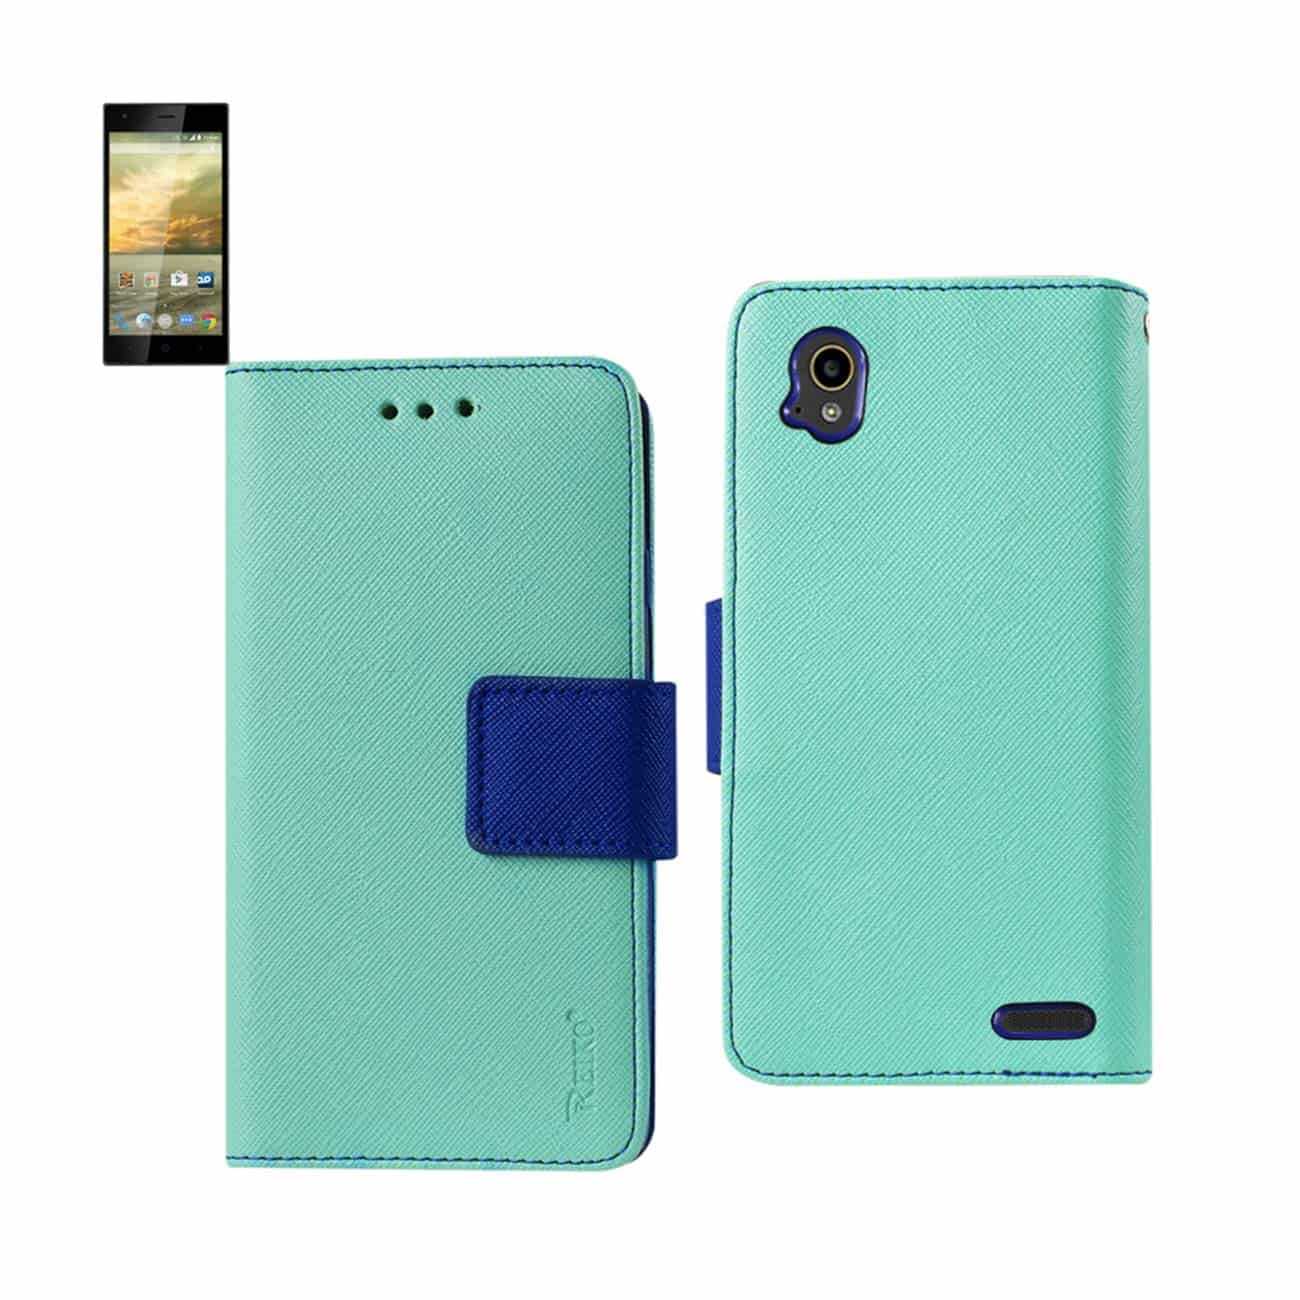 ZTE WARP ELITE 3-IN-1 WALLET CASE IN GREEN